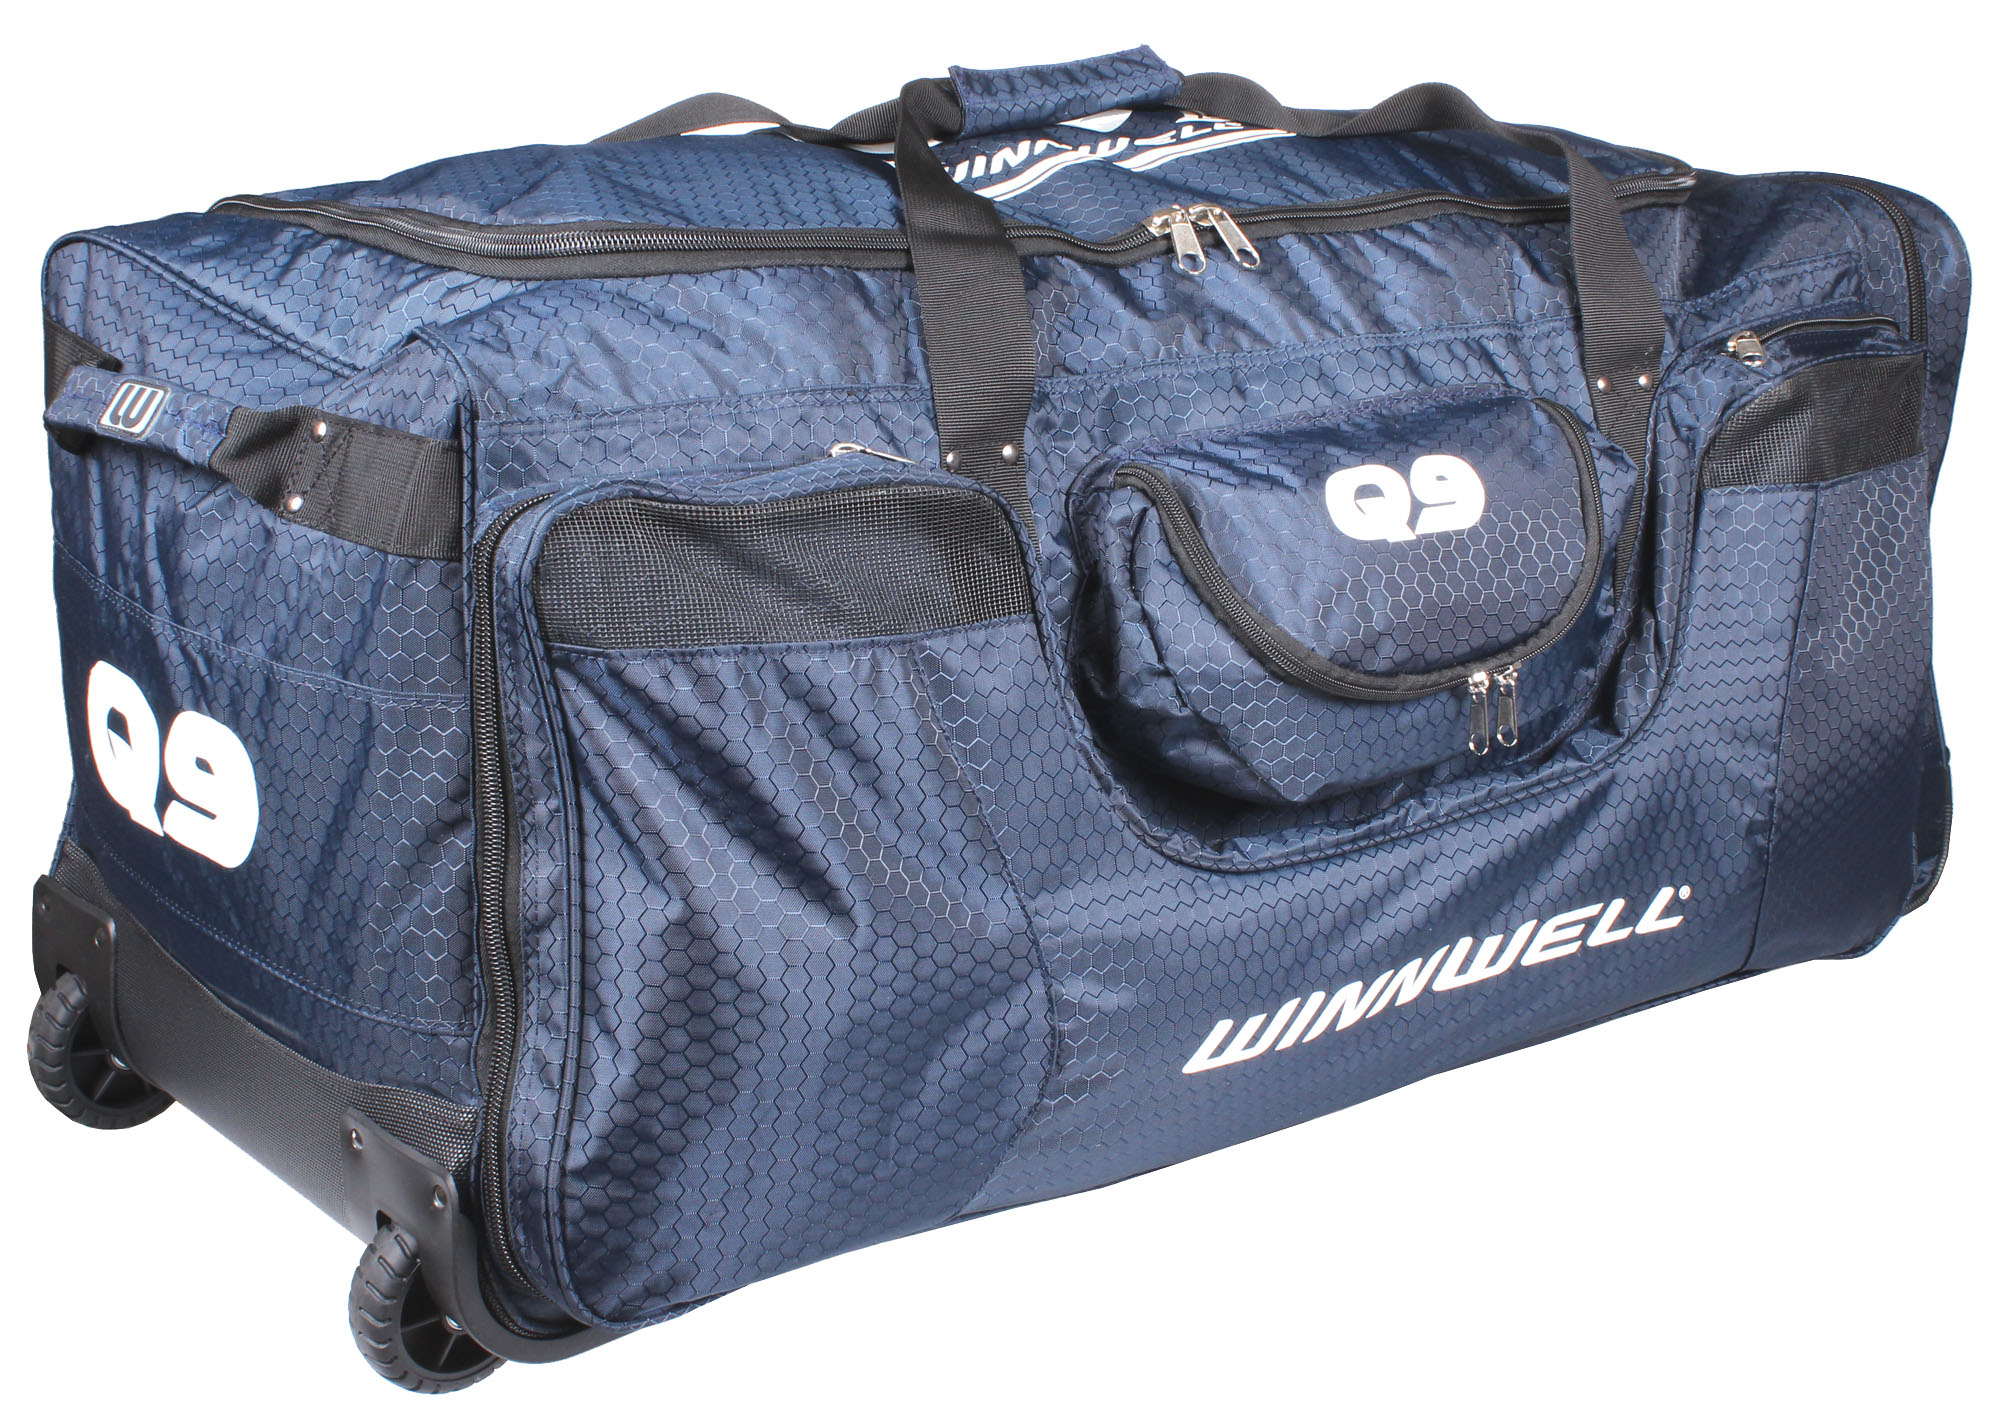 Taška Winnwell Q9 Wheel Bag SR. - blue